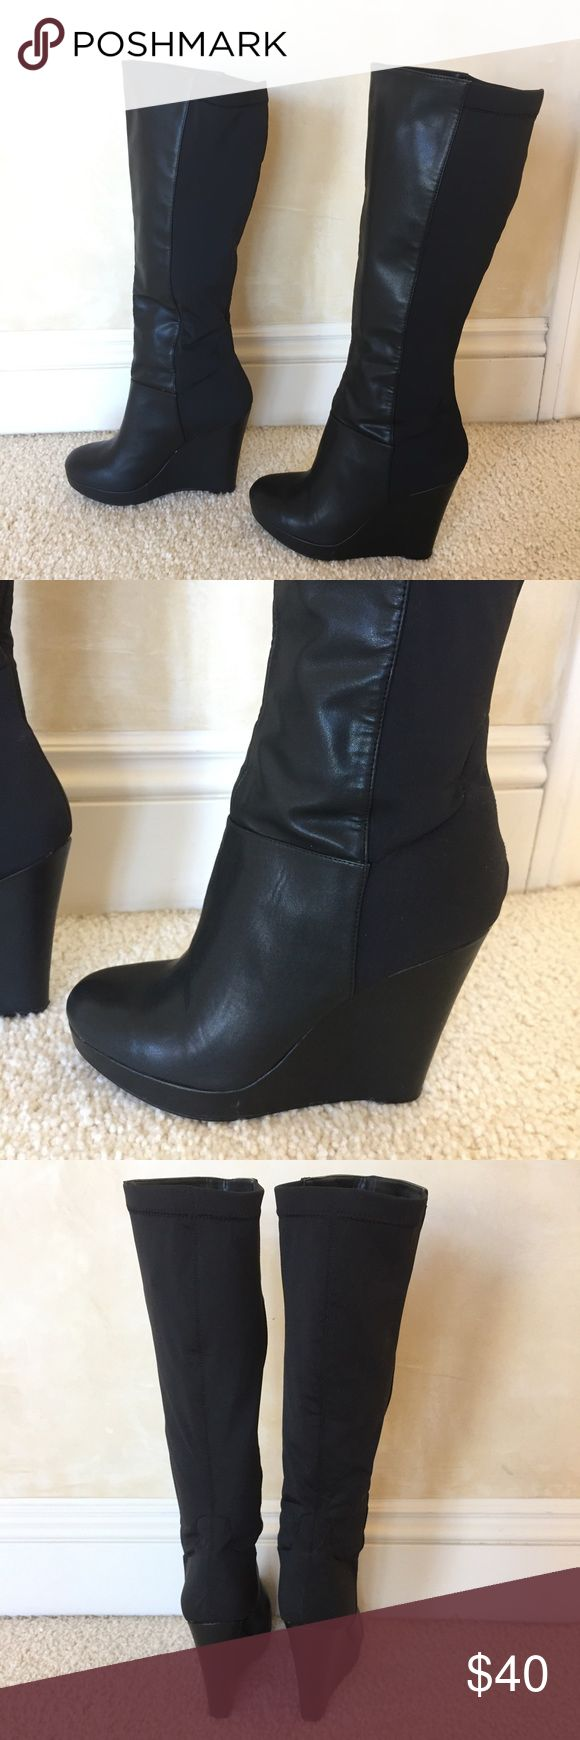 Steve Madden Melori Black Boots Great condition. Steve Madden Shoes Heeled Boots